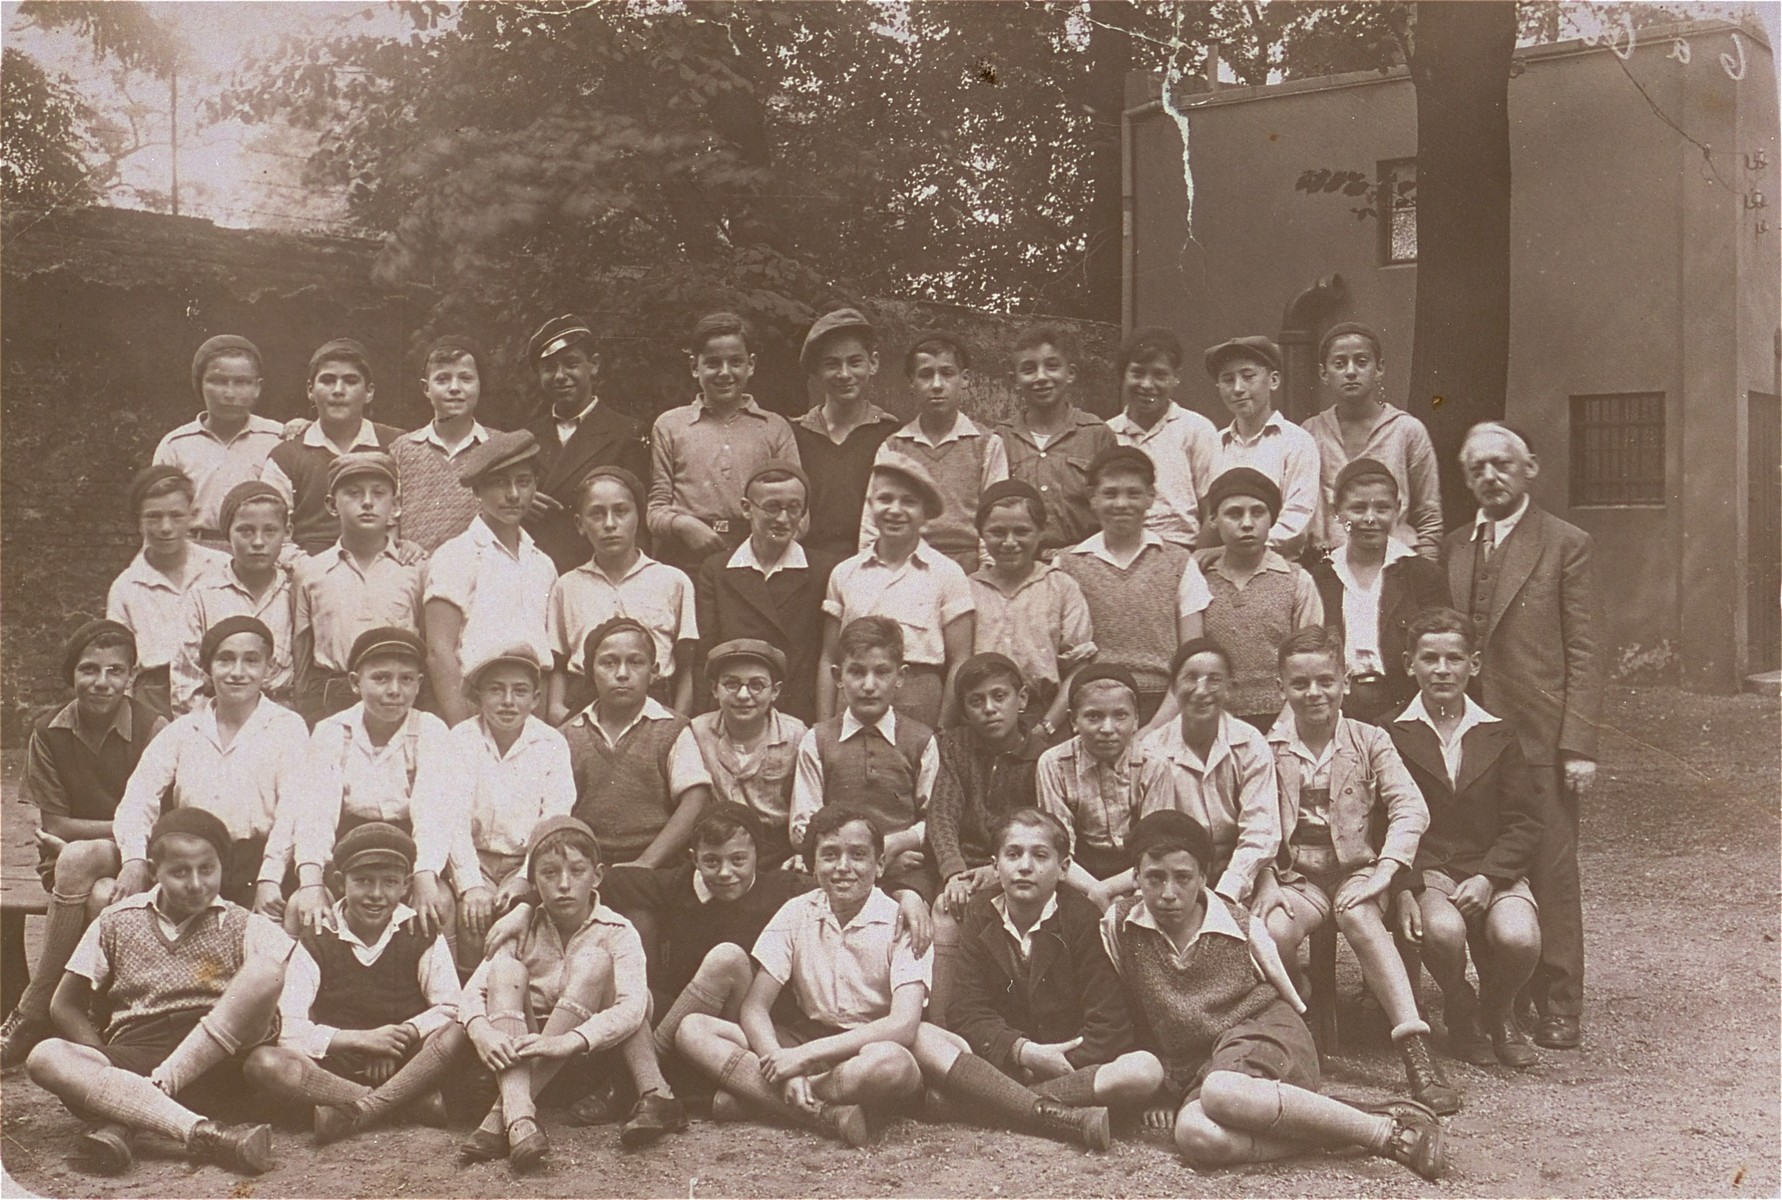 "Group portrait of students at the Adas Israel Jewish religious school for boys in Berlin.  Pictured in the front row, left to right are: unknown, Lotar, Halbersztadt, Engelhart, Halle, Petranker and Jacobi;  second row:  Roseman, unknown, Blecher, Manfred Barkowski, unknown, Birenbaum, Levy, Abraham Muhlbaum, Siegelman; third row: Kempe, unknown, Felder, Weil, Goldwasser, unknown, Walter Barkowski.  On the extreme right is the teacher, Halberstadt.  Second from the right in the last row is: ""Bombe"" Feldman, unknown, ""Negus"", Markus and Naftali."